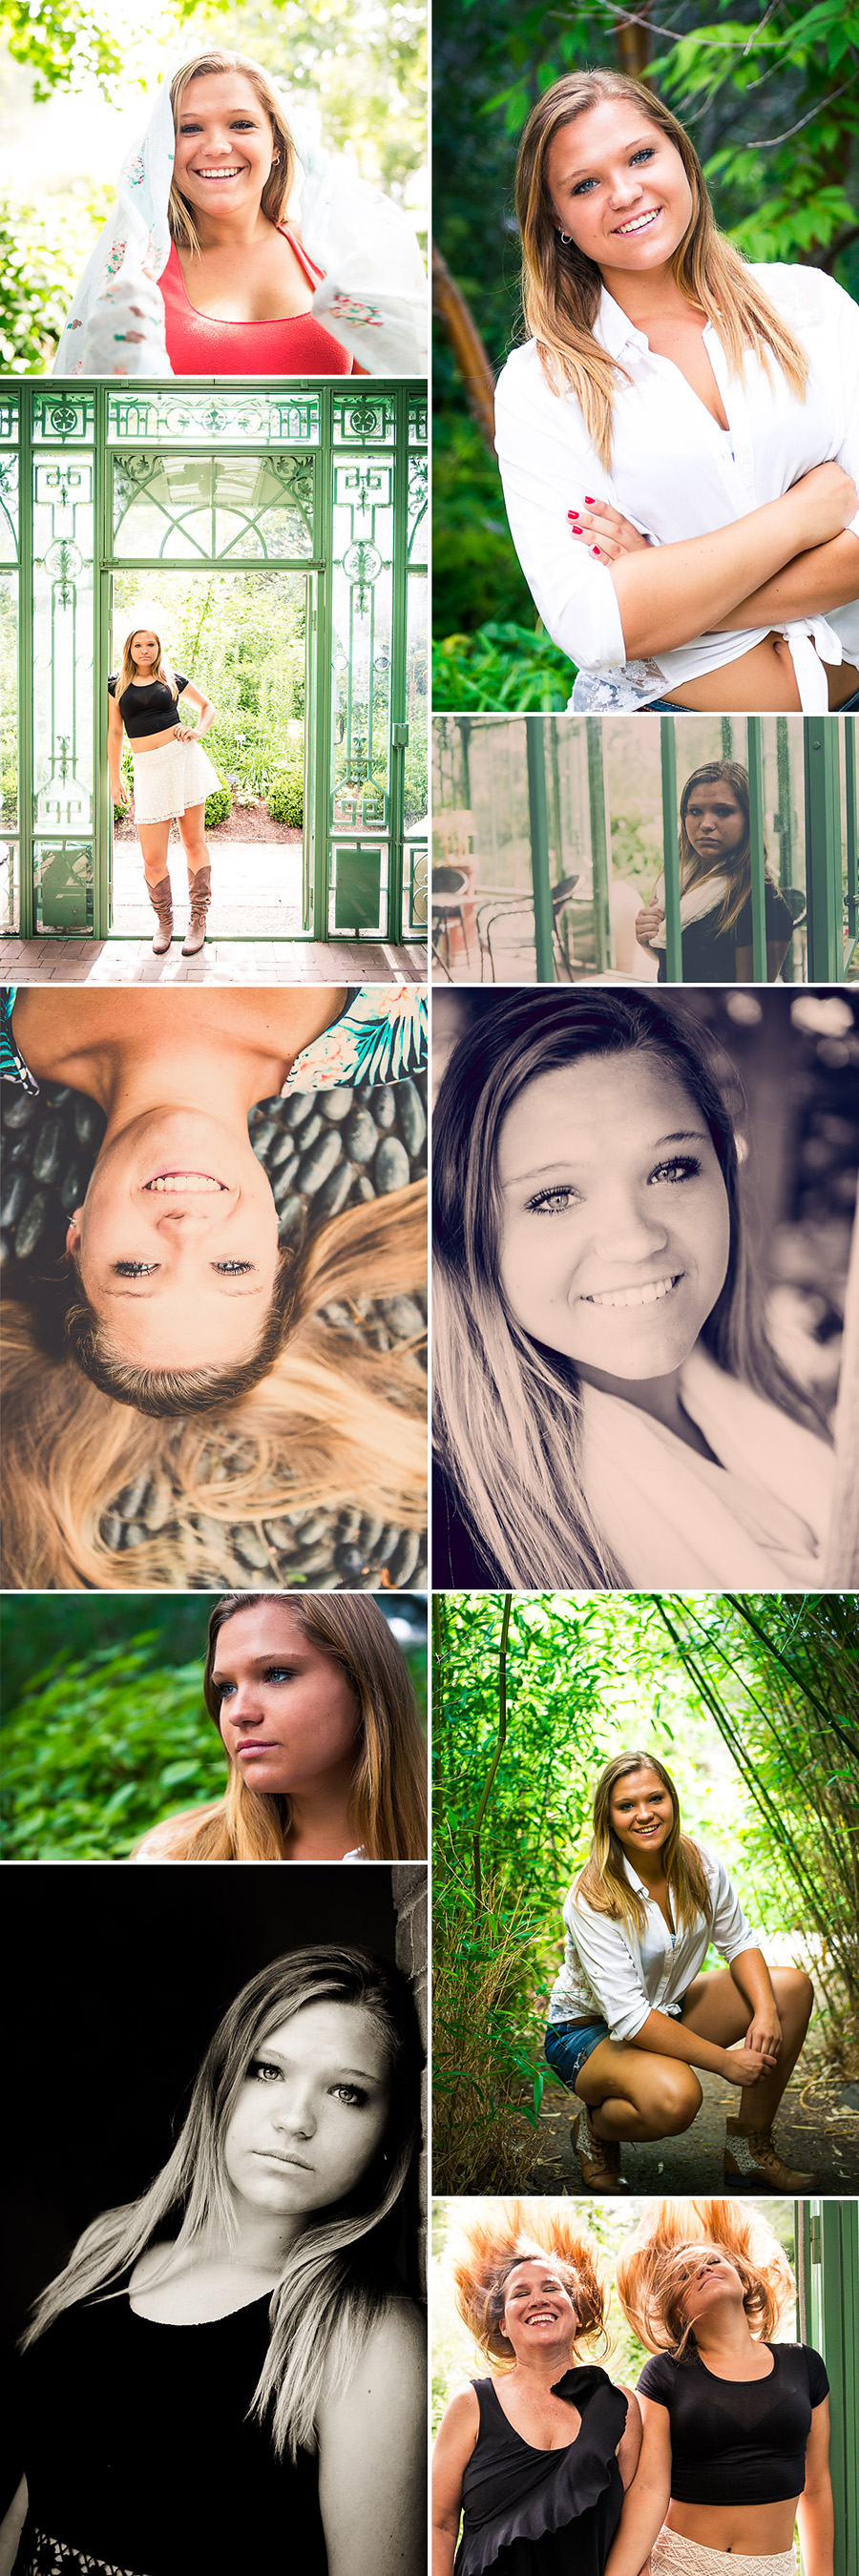 Mountain Range Senior Photos AshleyZ collage